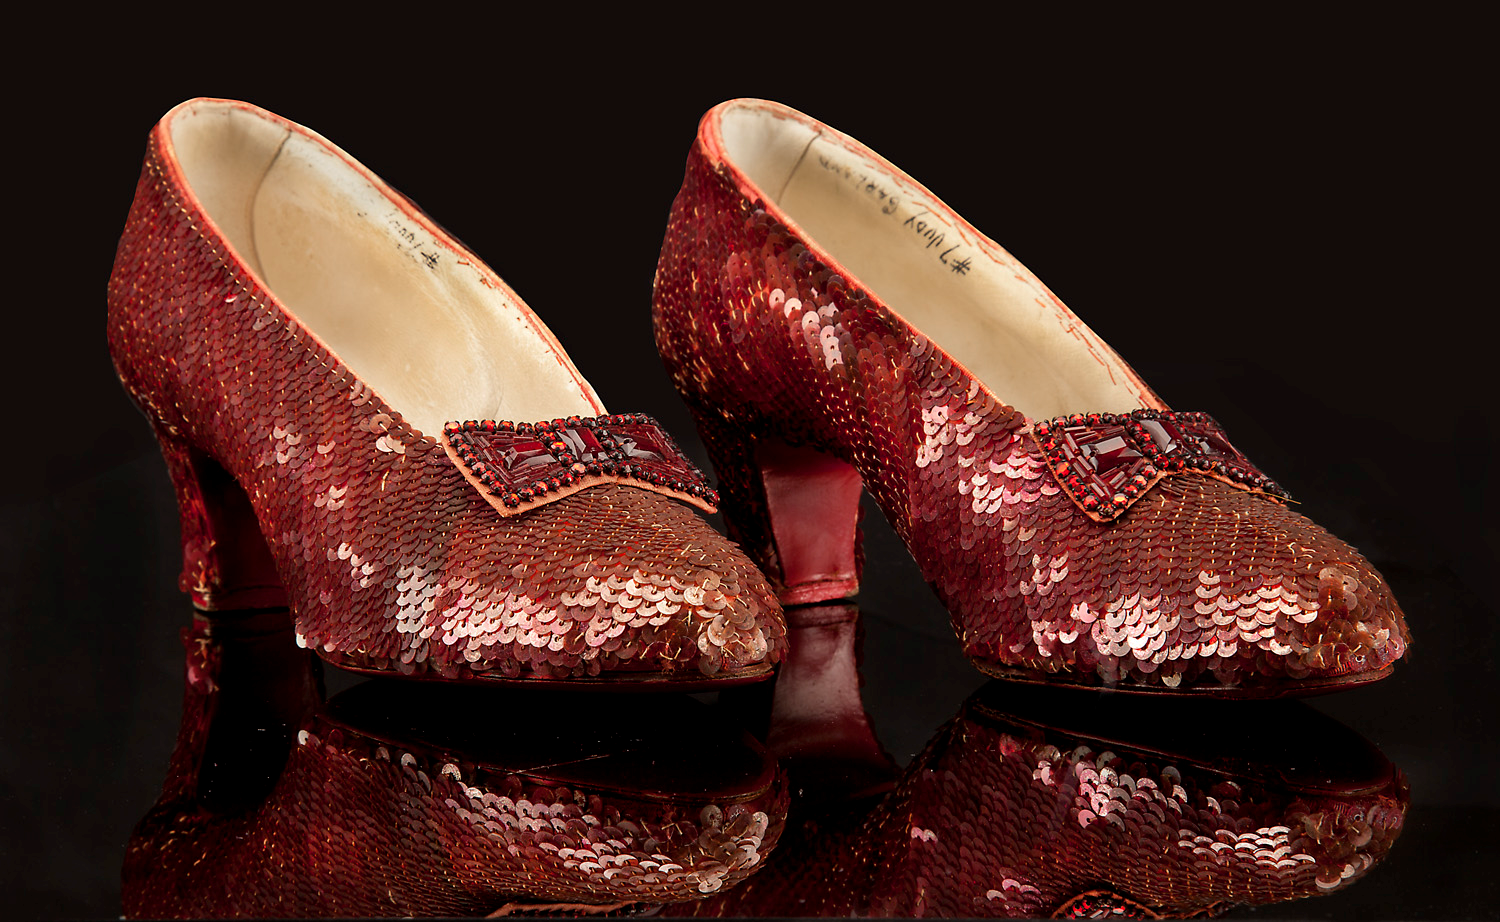 Original Wizard of Oz' Ruby Slippers